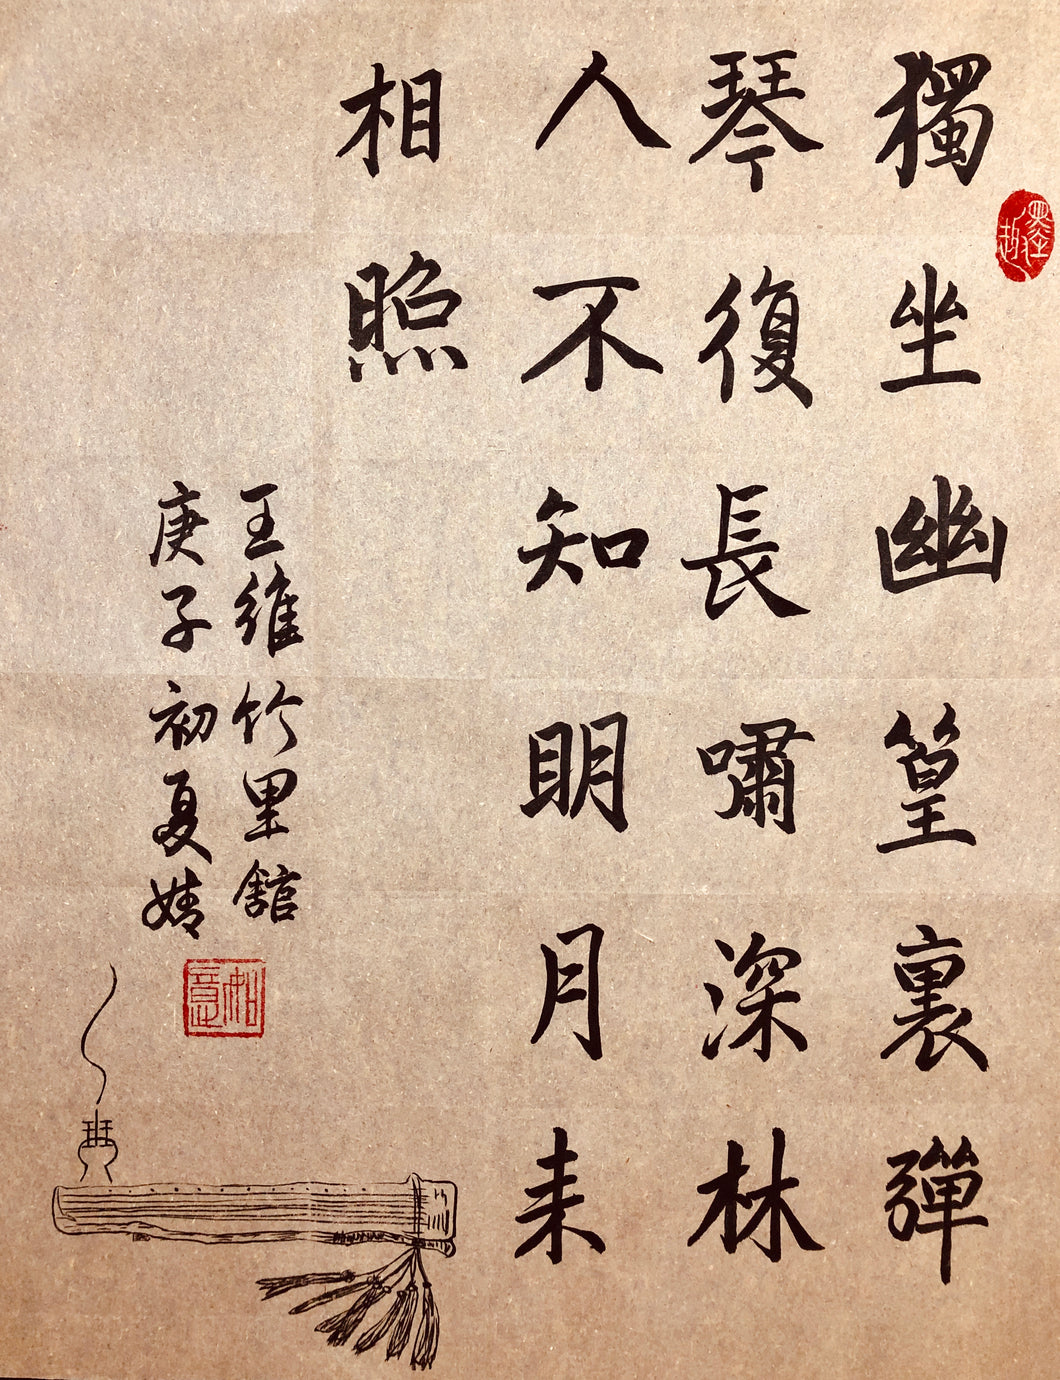 Poem, The Bamboo Hut by Wang Wei (Original)